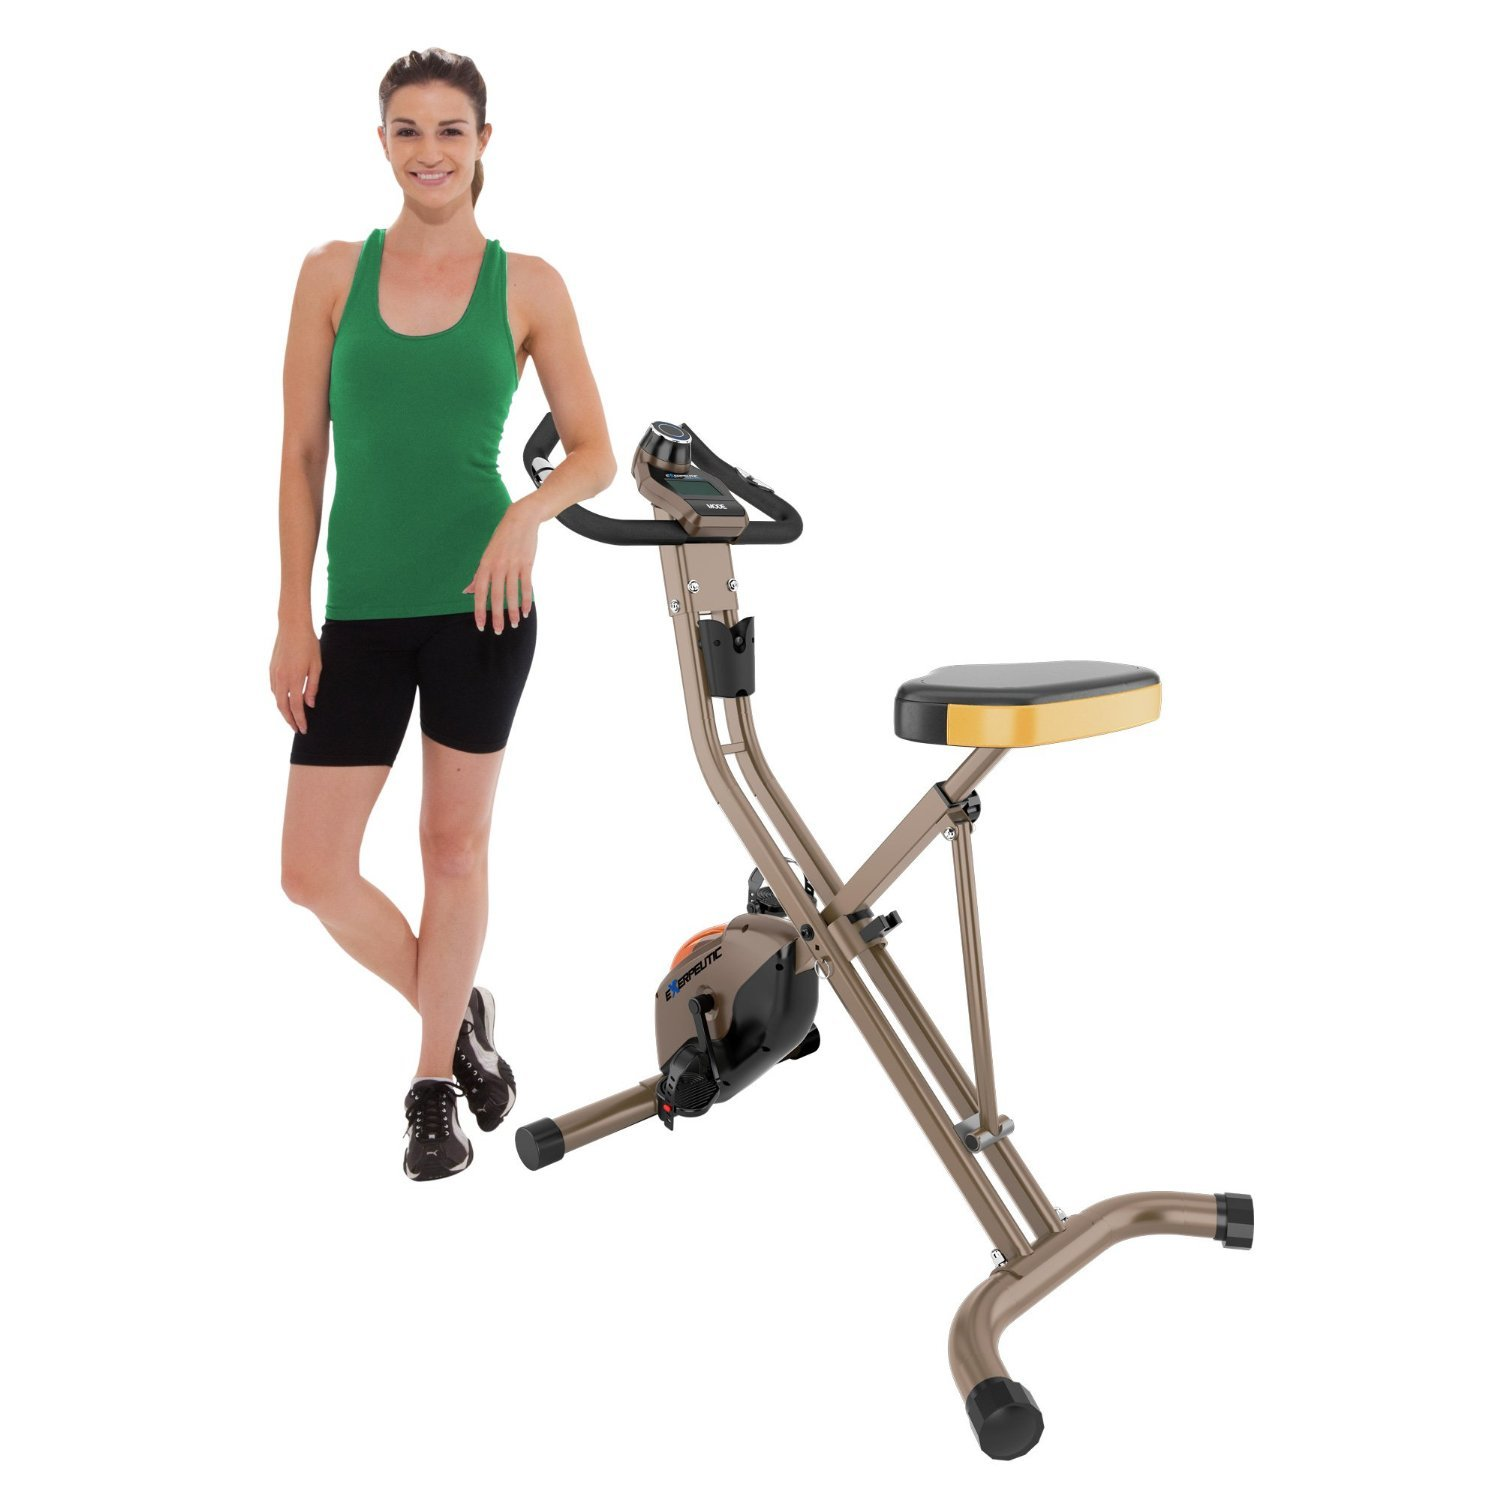 the Exerpeutic GOLD 500 XLS Foldable Upright Bike, 400 lbs ready for a workout